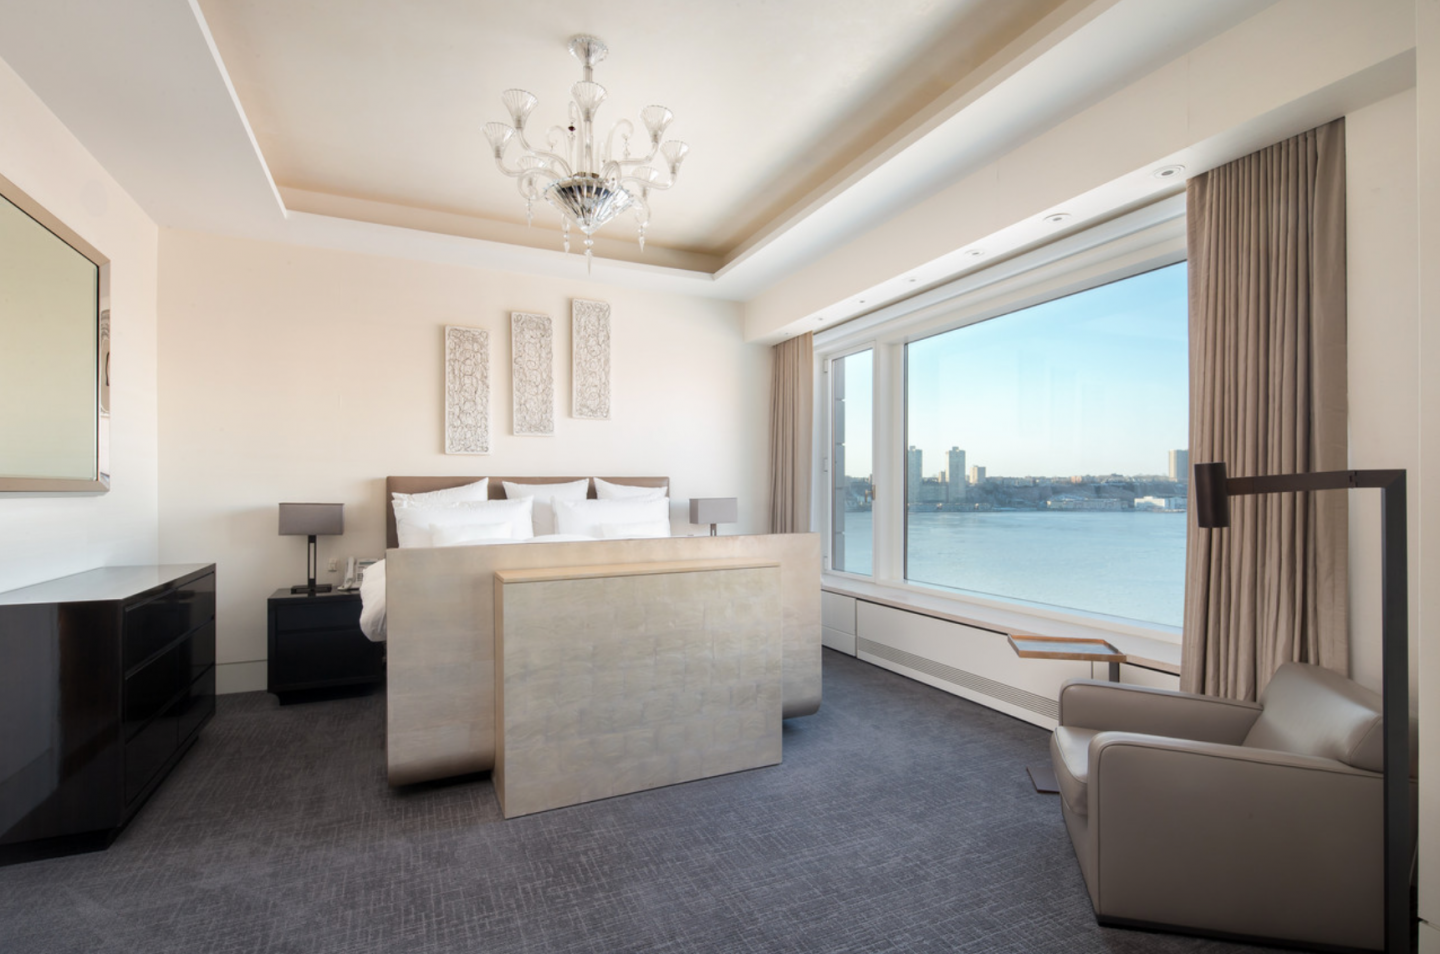 Bedroom with view of Hudson River.